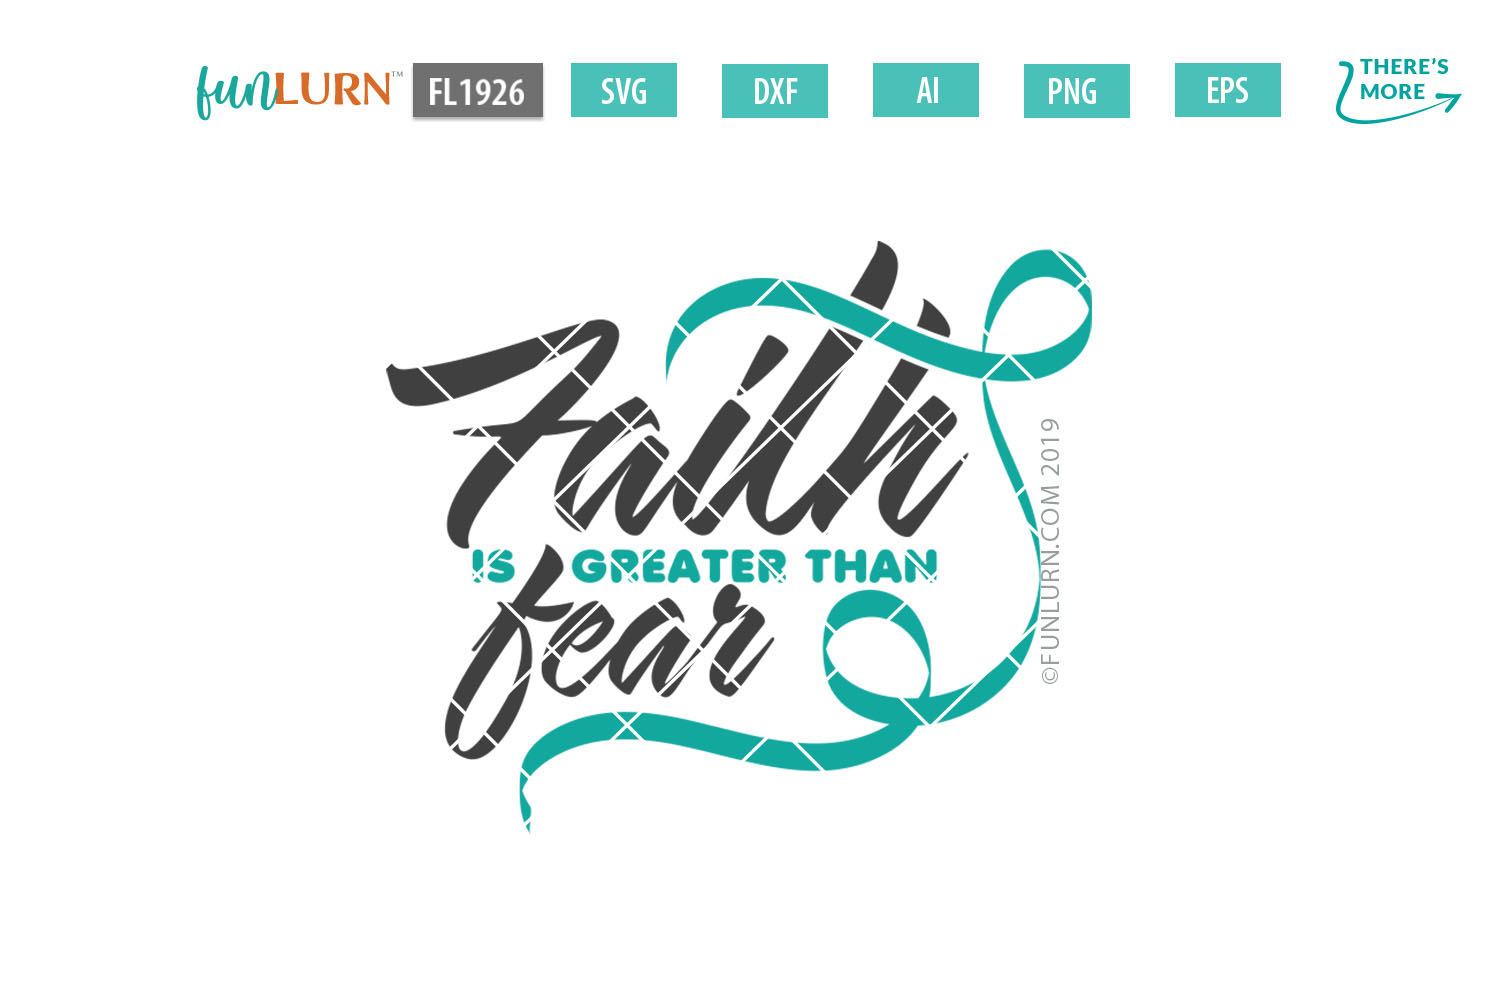 Faith is Greater Than Fear Teal Ribbon SVG Cut File example image 1